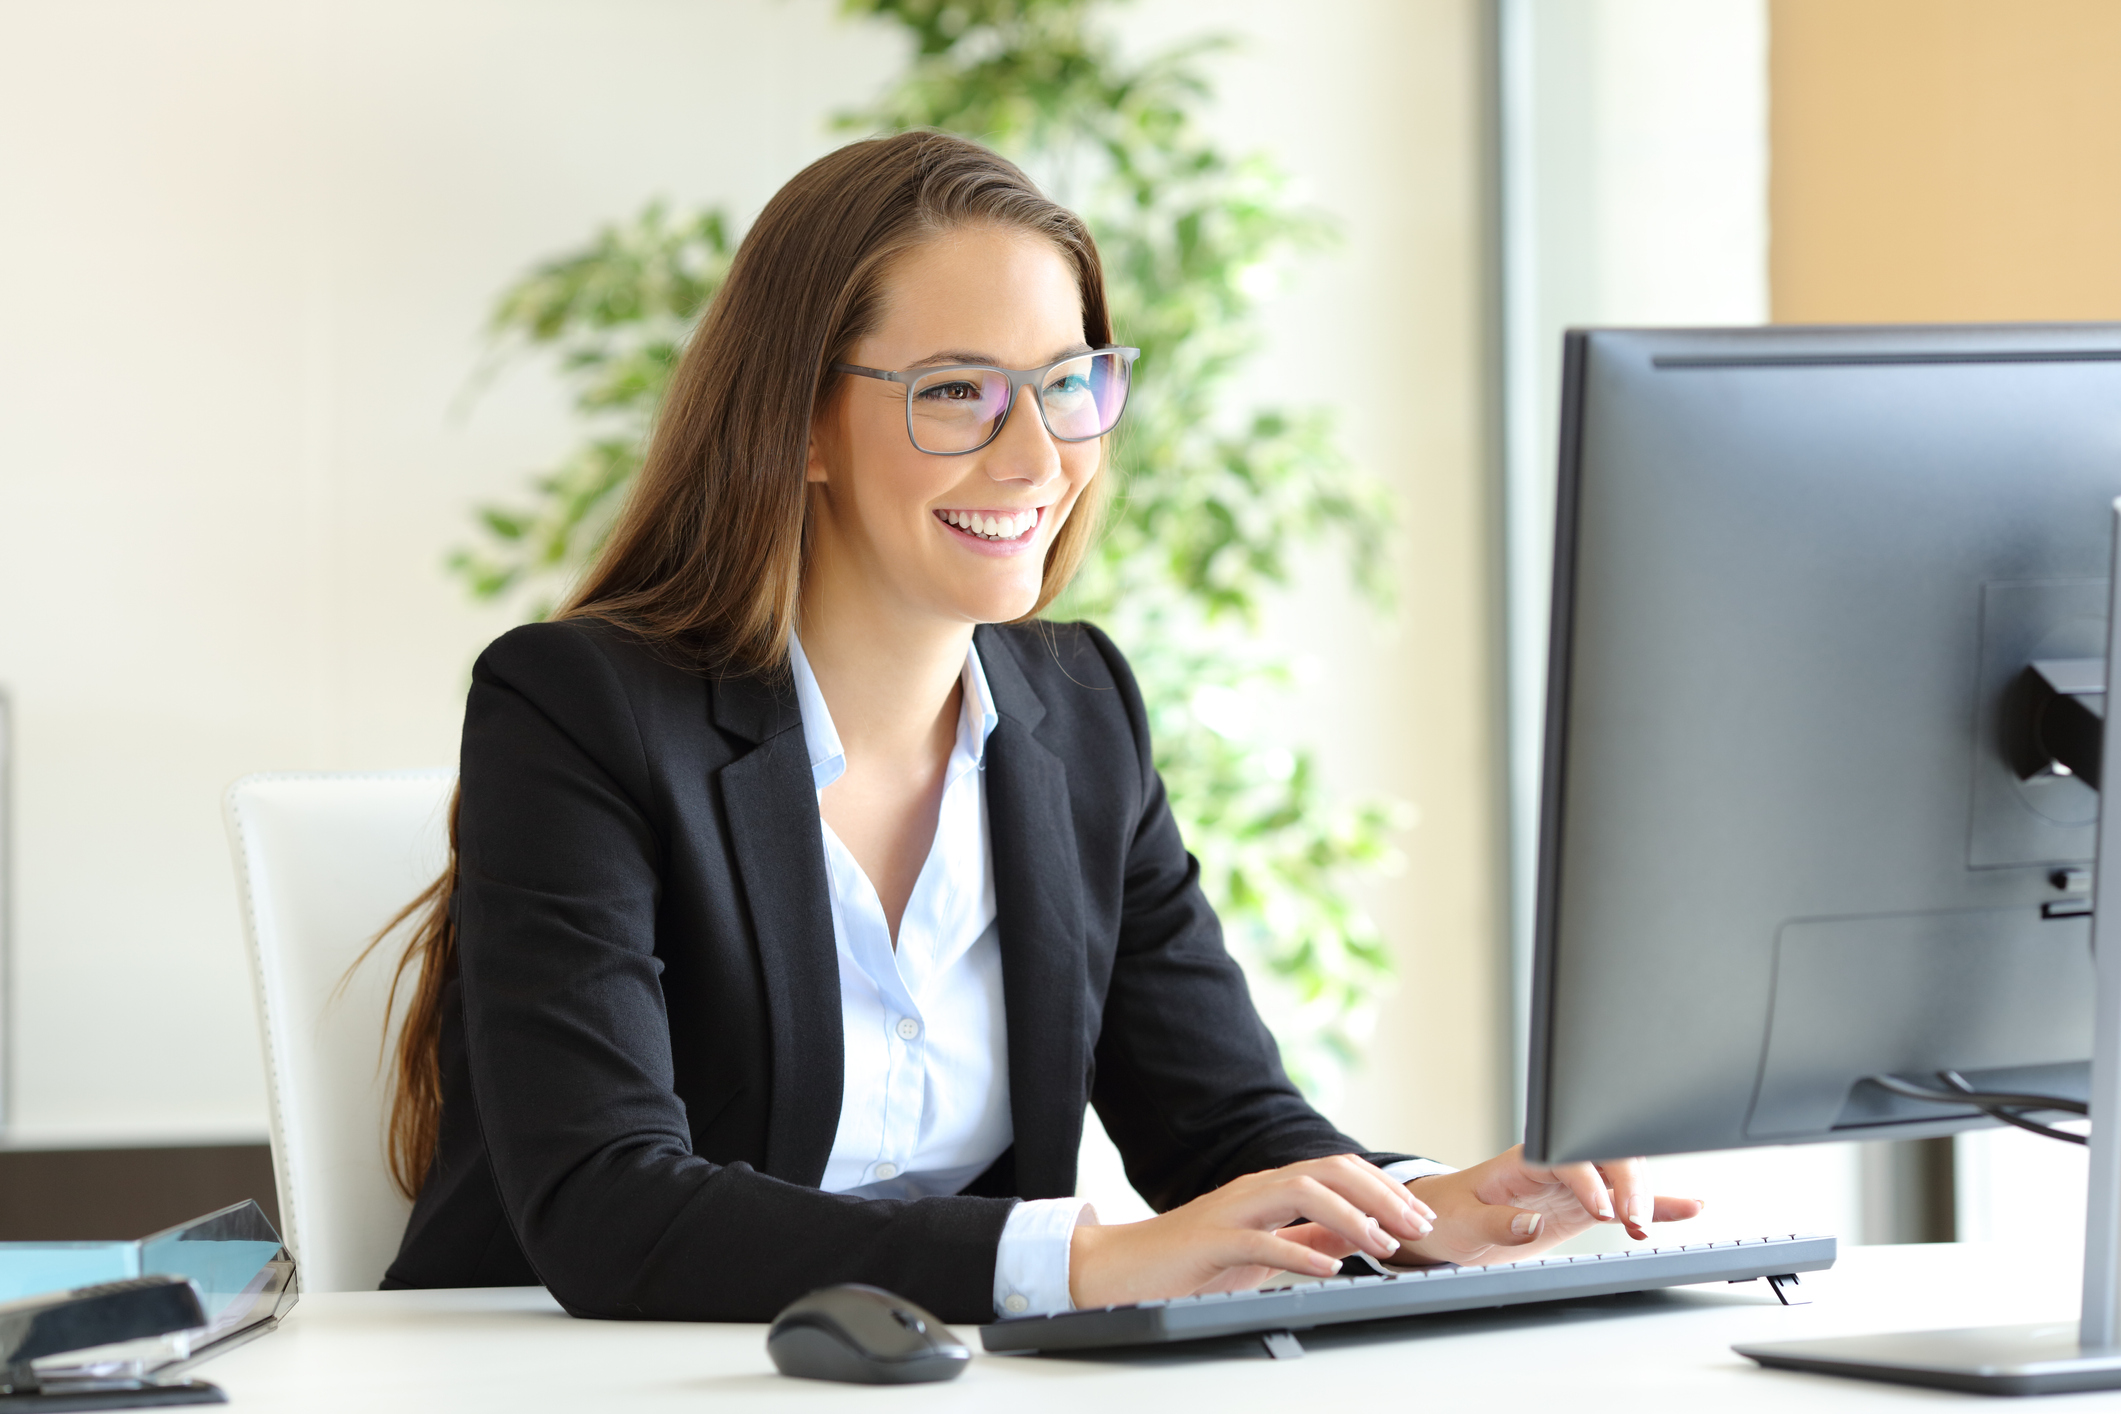 Professional woman sitting at desk typing and looking at screen.